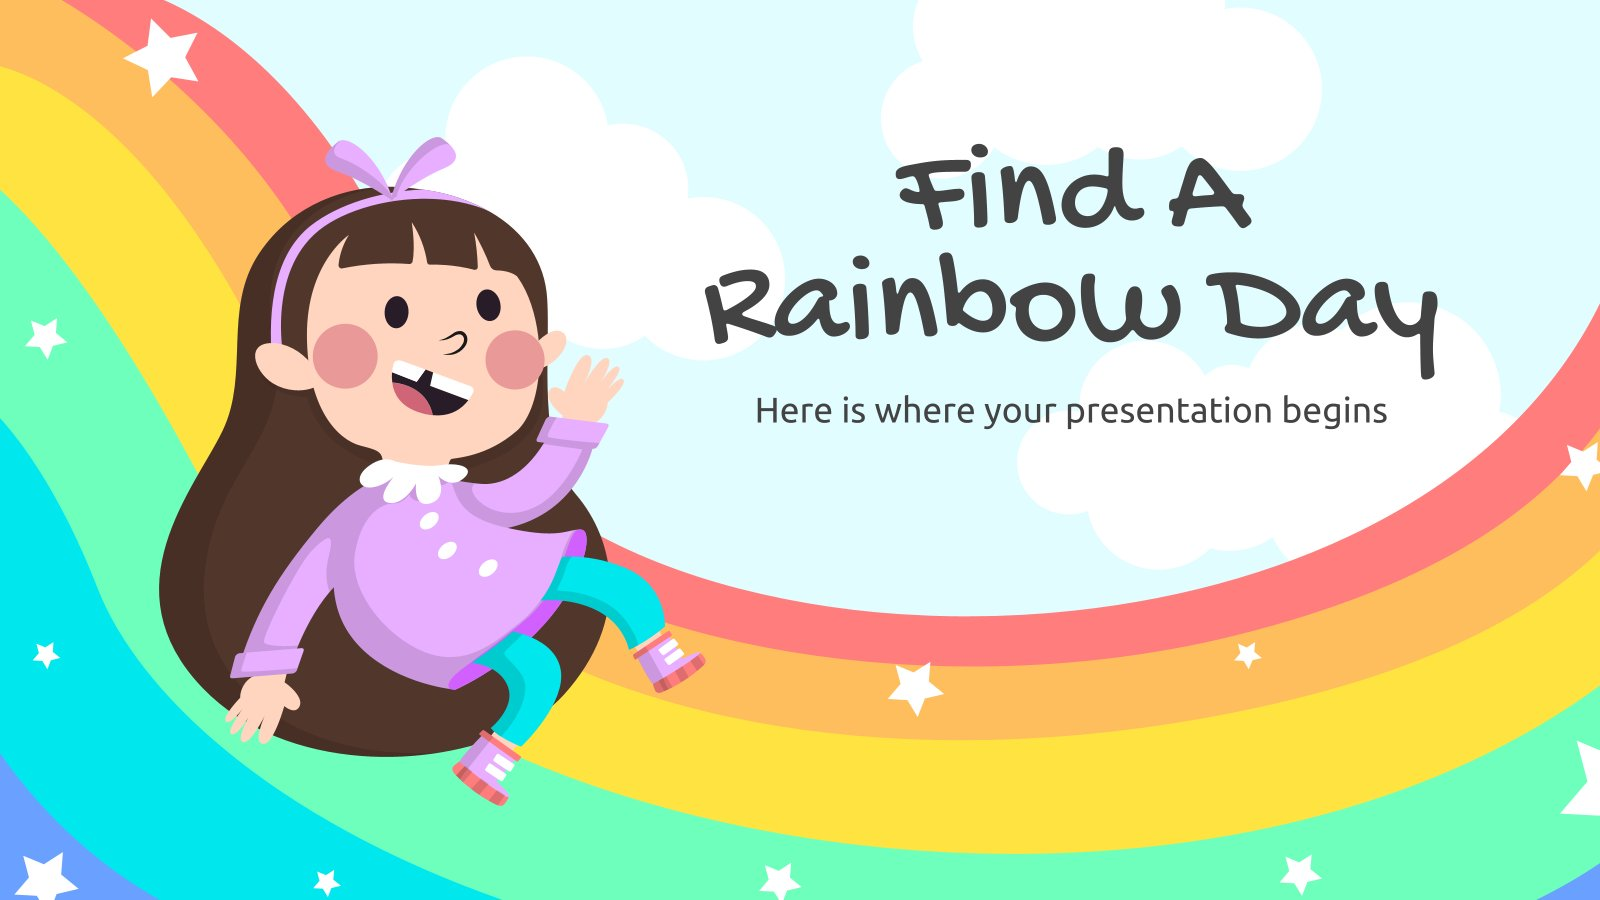 Find a Rainbow Day presentation template